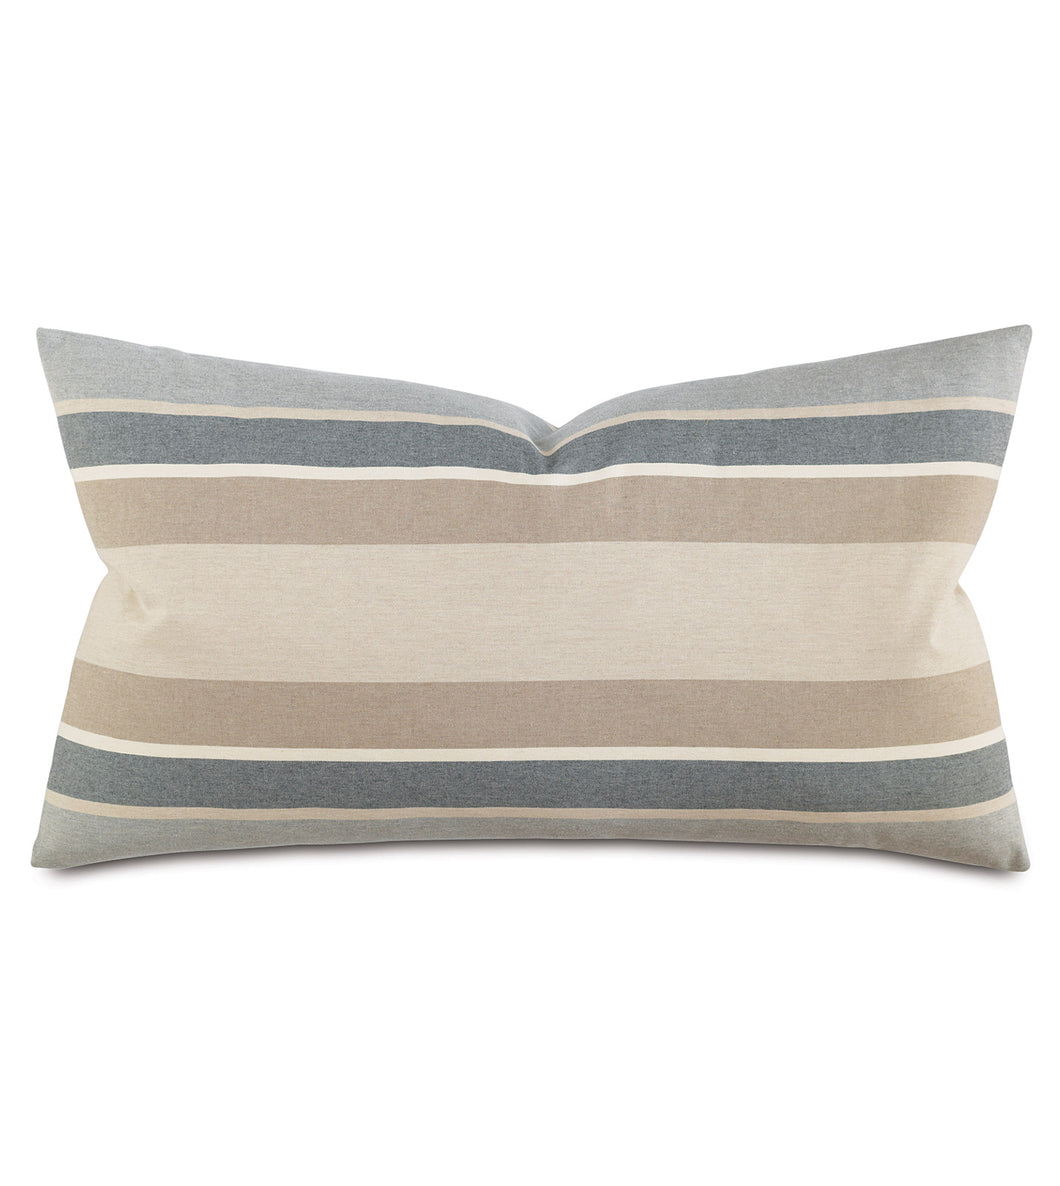 Wainscott Buff Striped King Sham  21